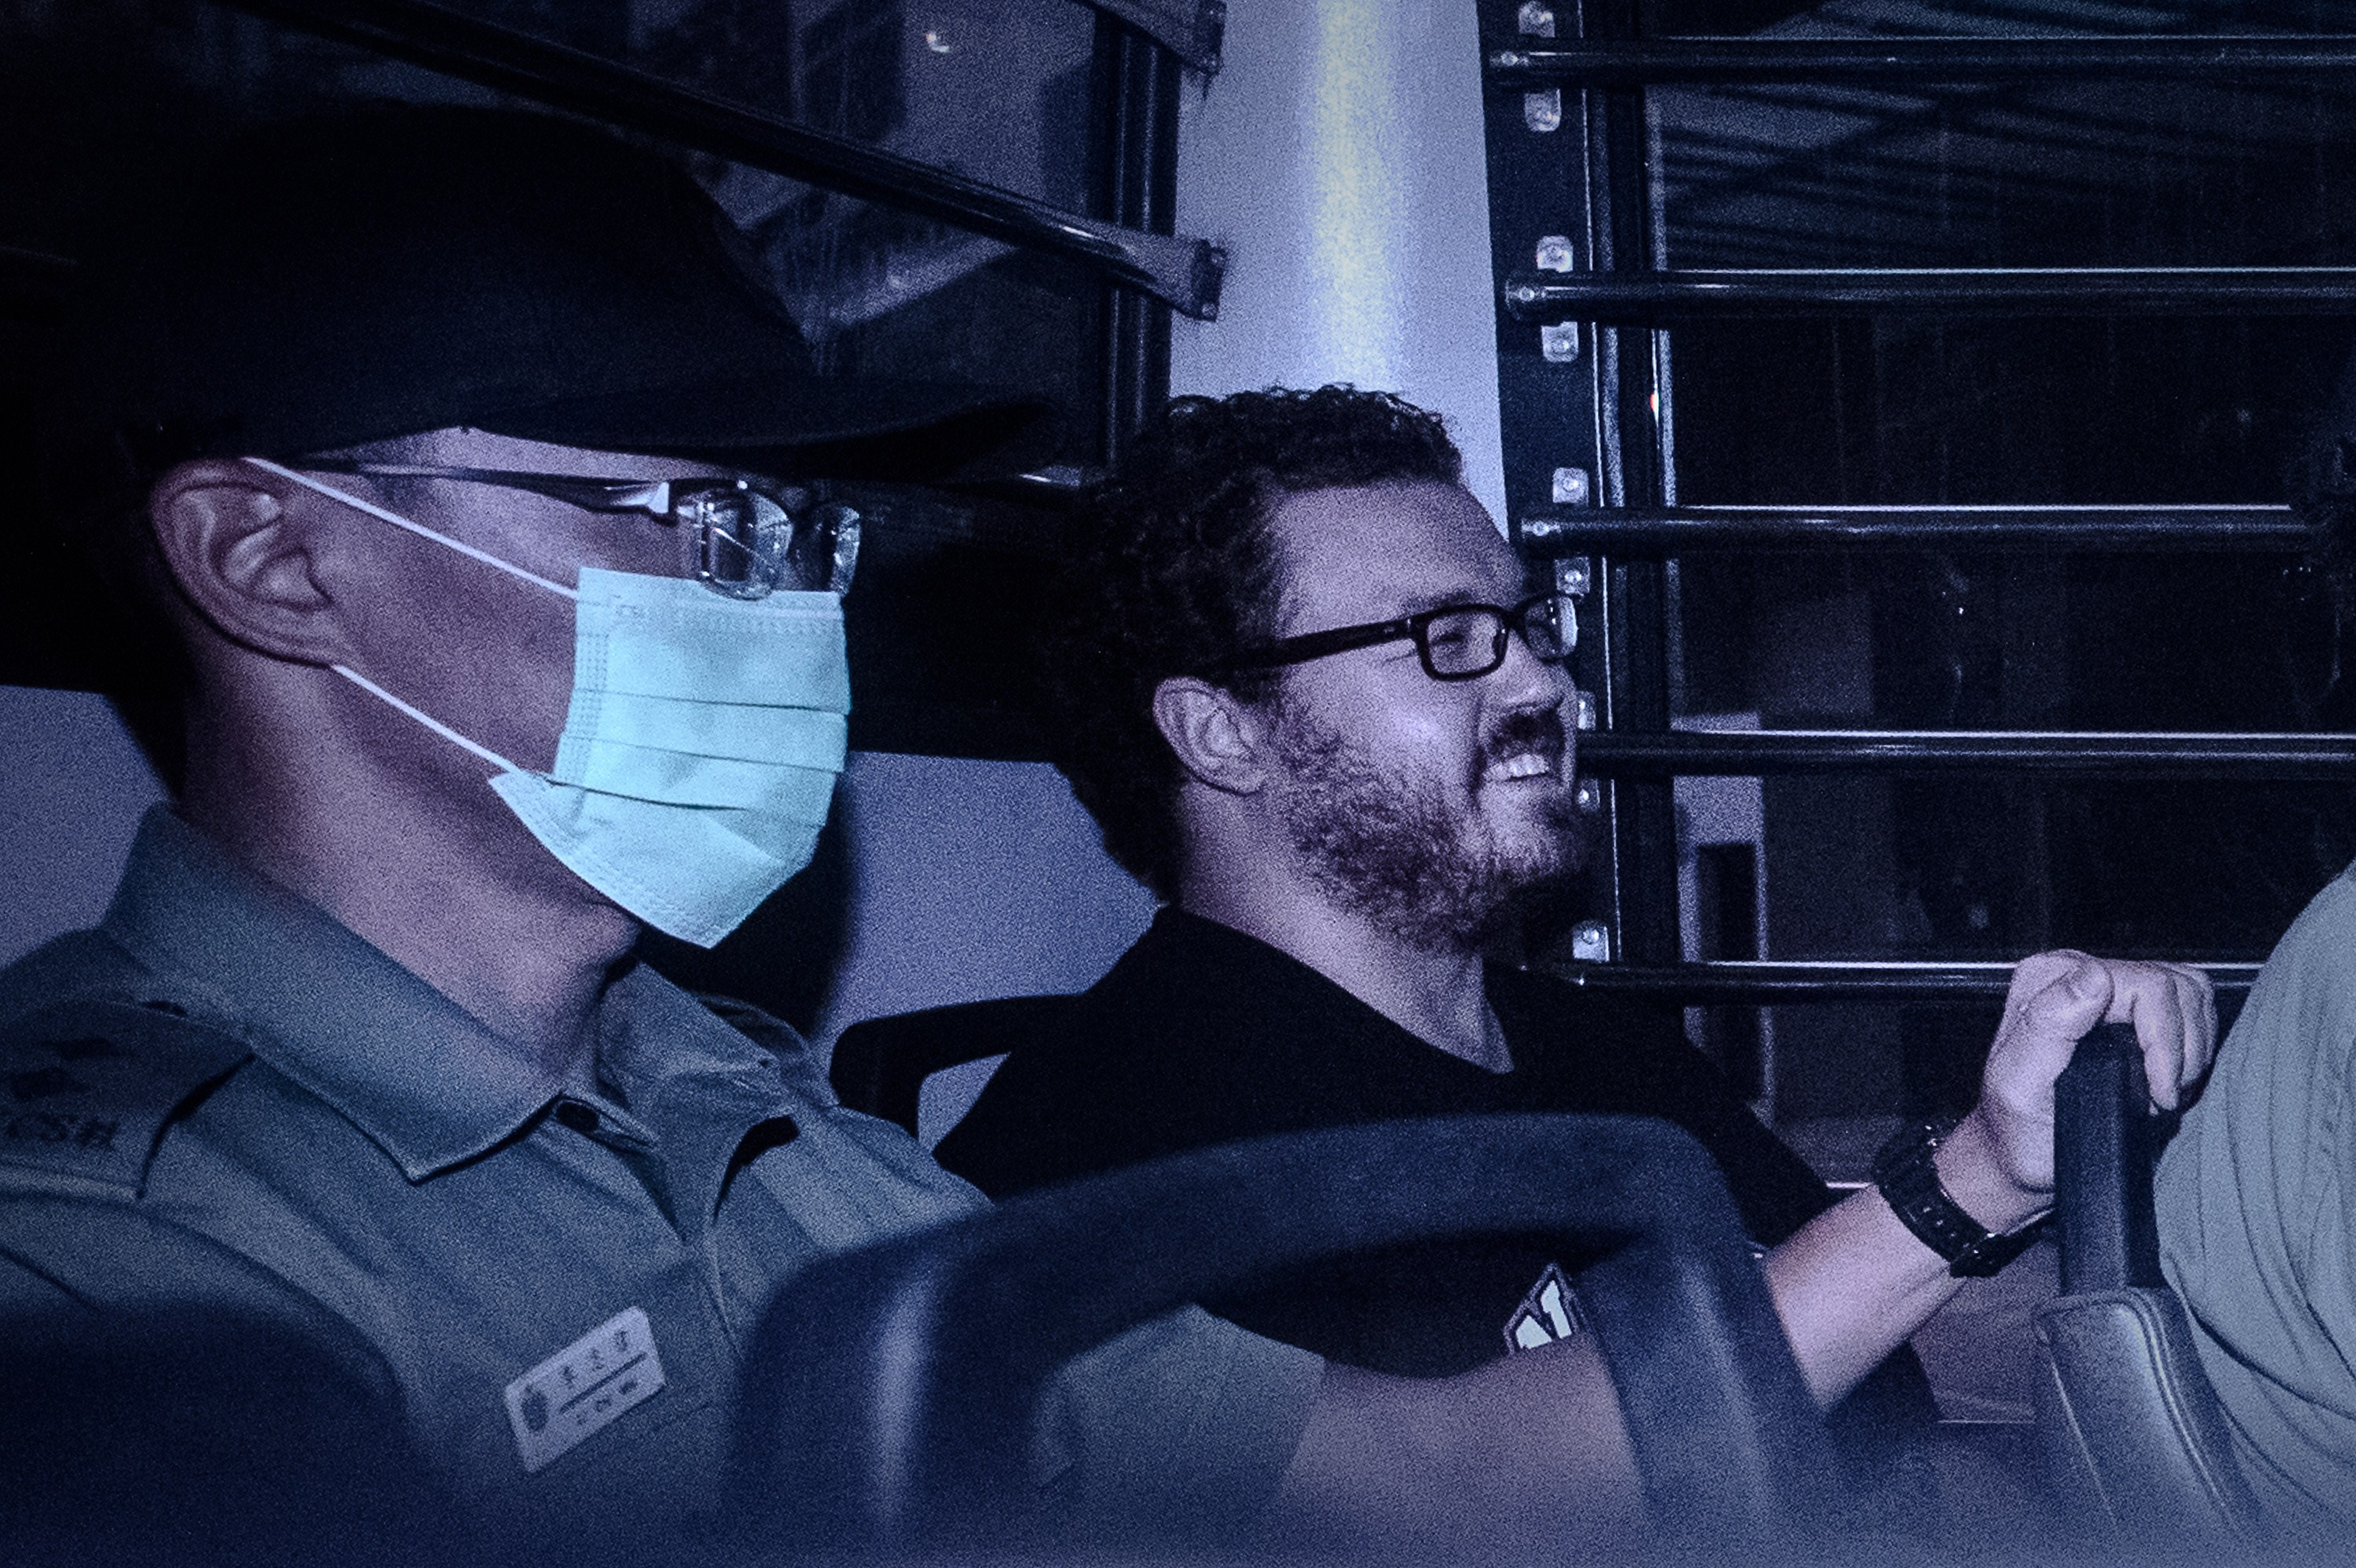 British banker Rurik Jutting, charged with the grisly murders of two women, smiles as he sits in a prison van leaving the Eastern Court in Hong Kong on Nov. 10, 2014